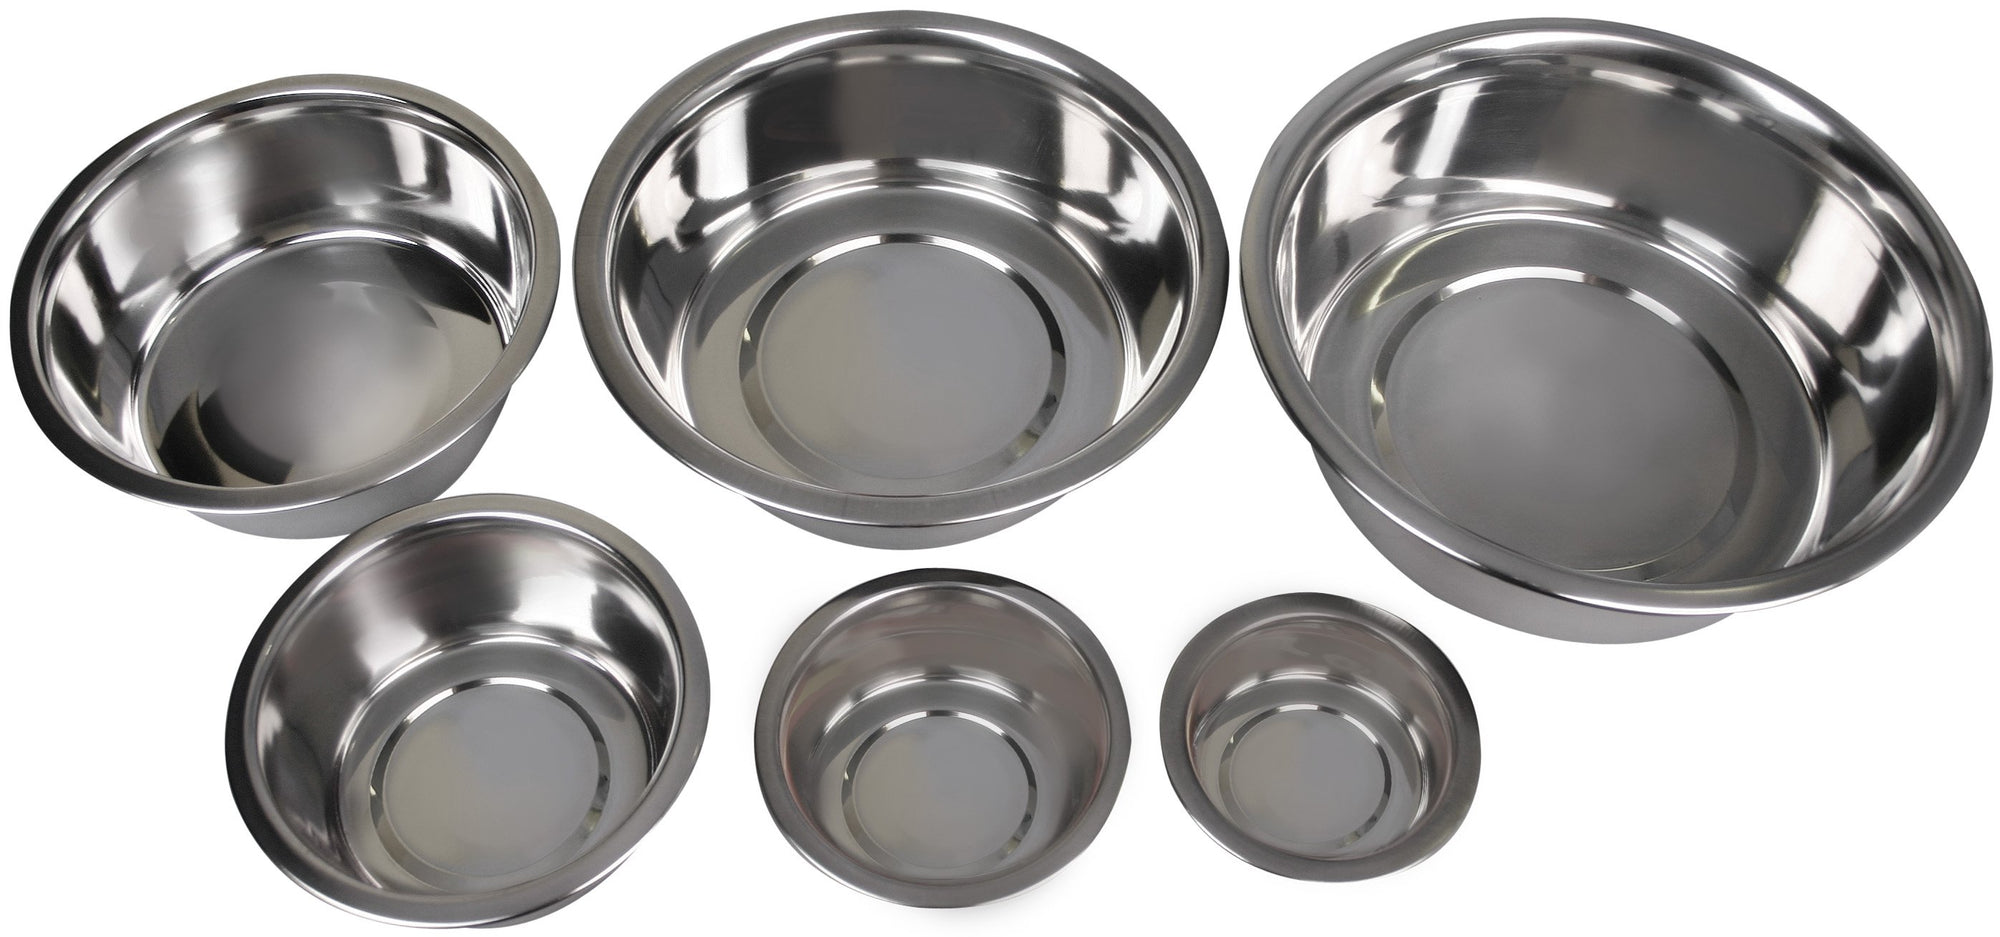 Pet One Stainless Steel Bowl